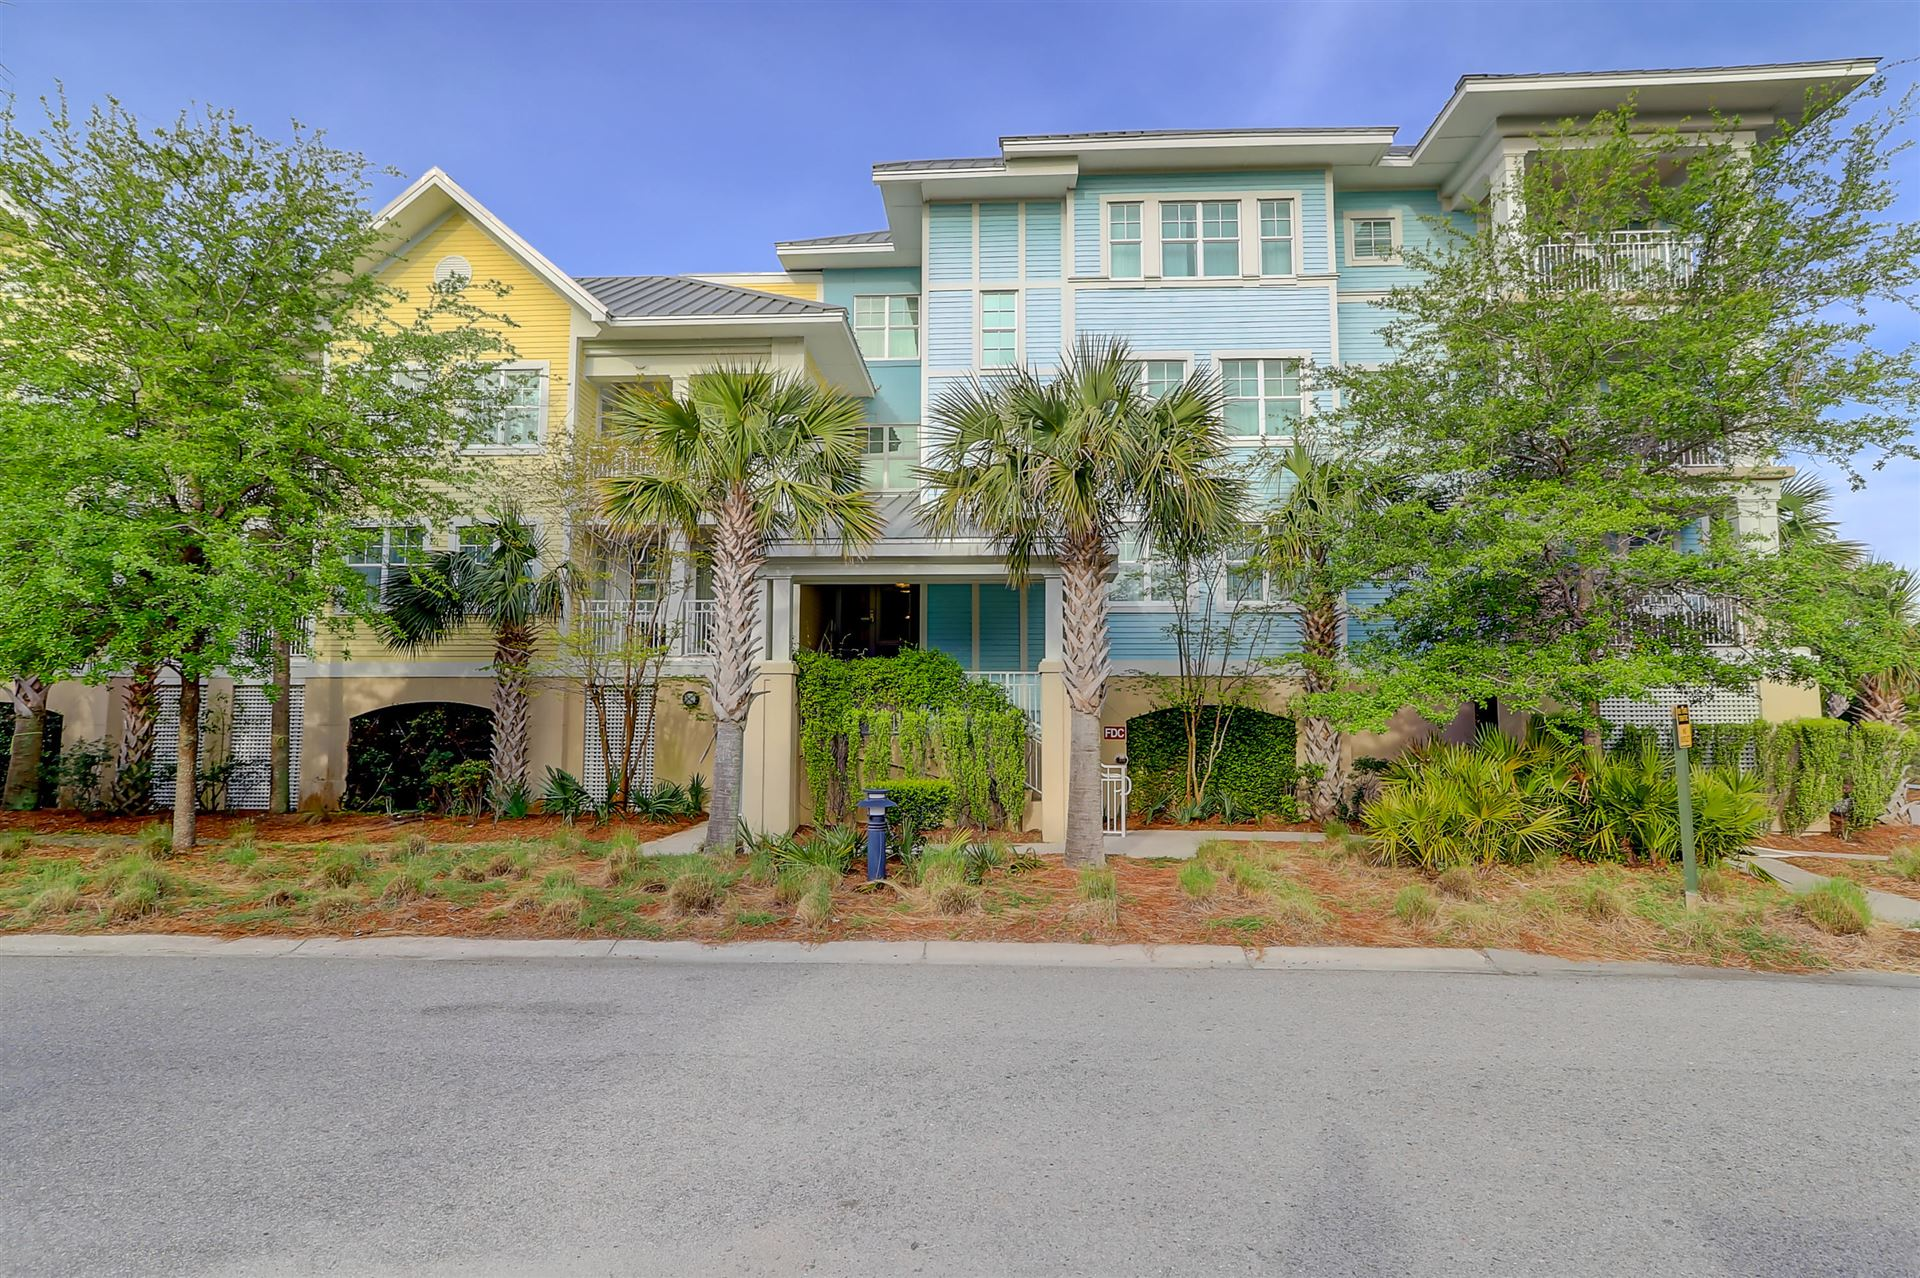 Photo of 5800 Palmetto Drive #R-Vg205, Isle of Palms, SC 29451 (MLS # 21002198)